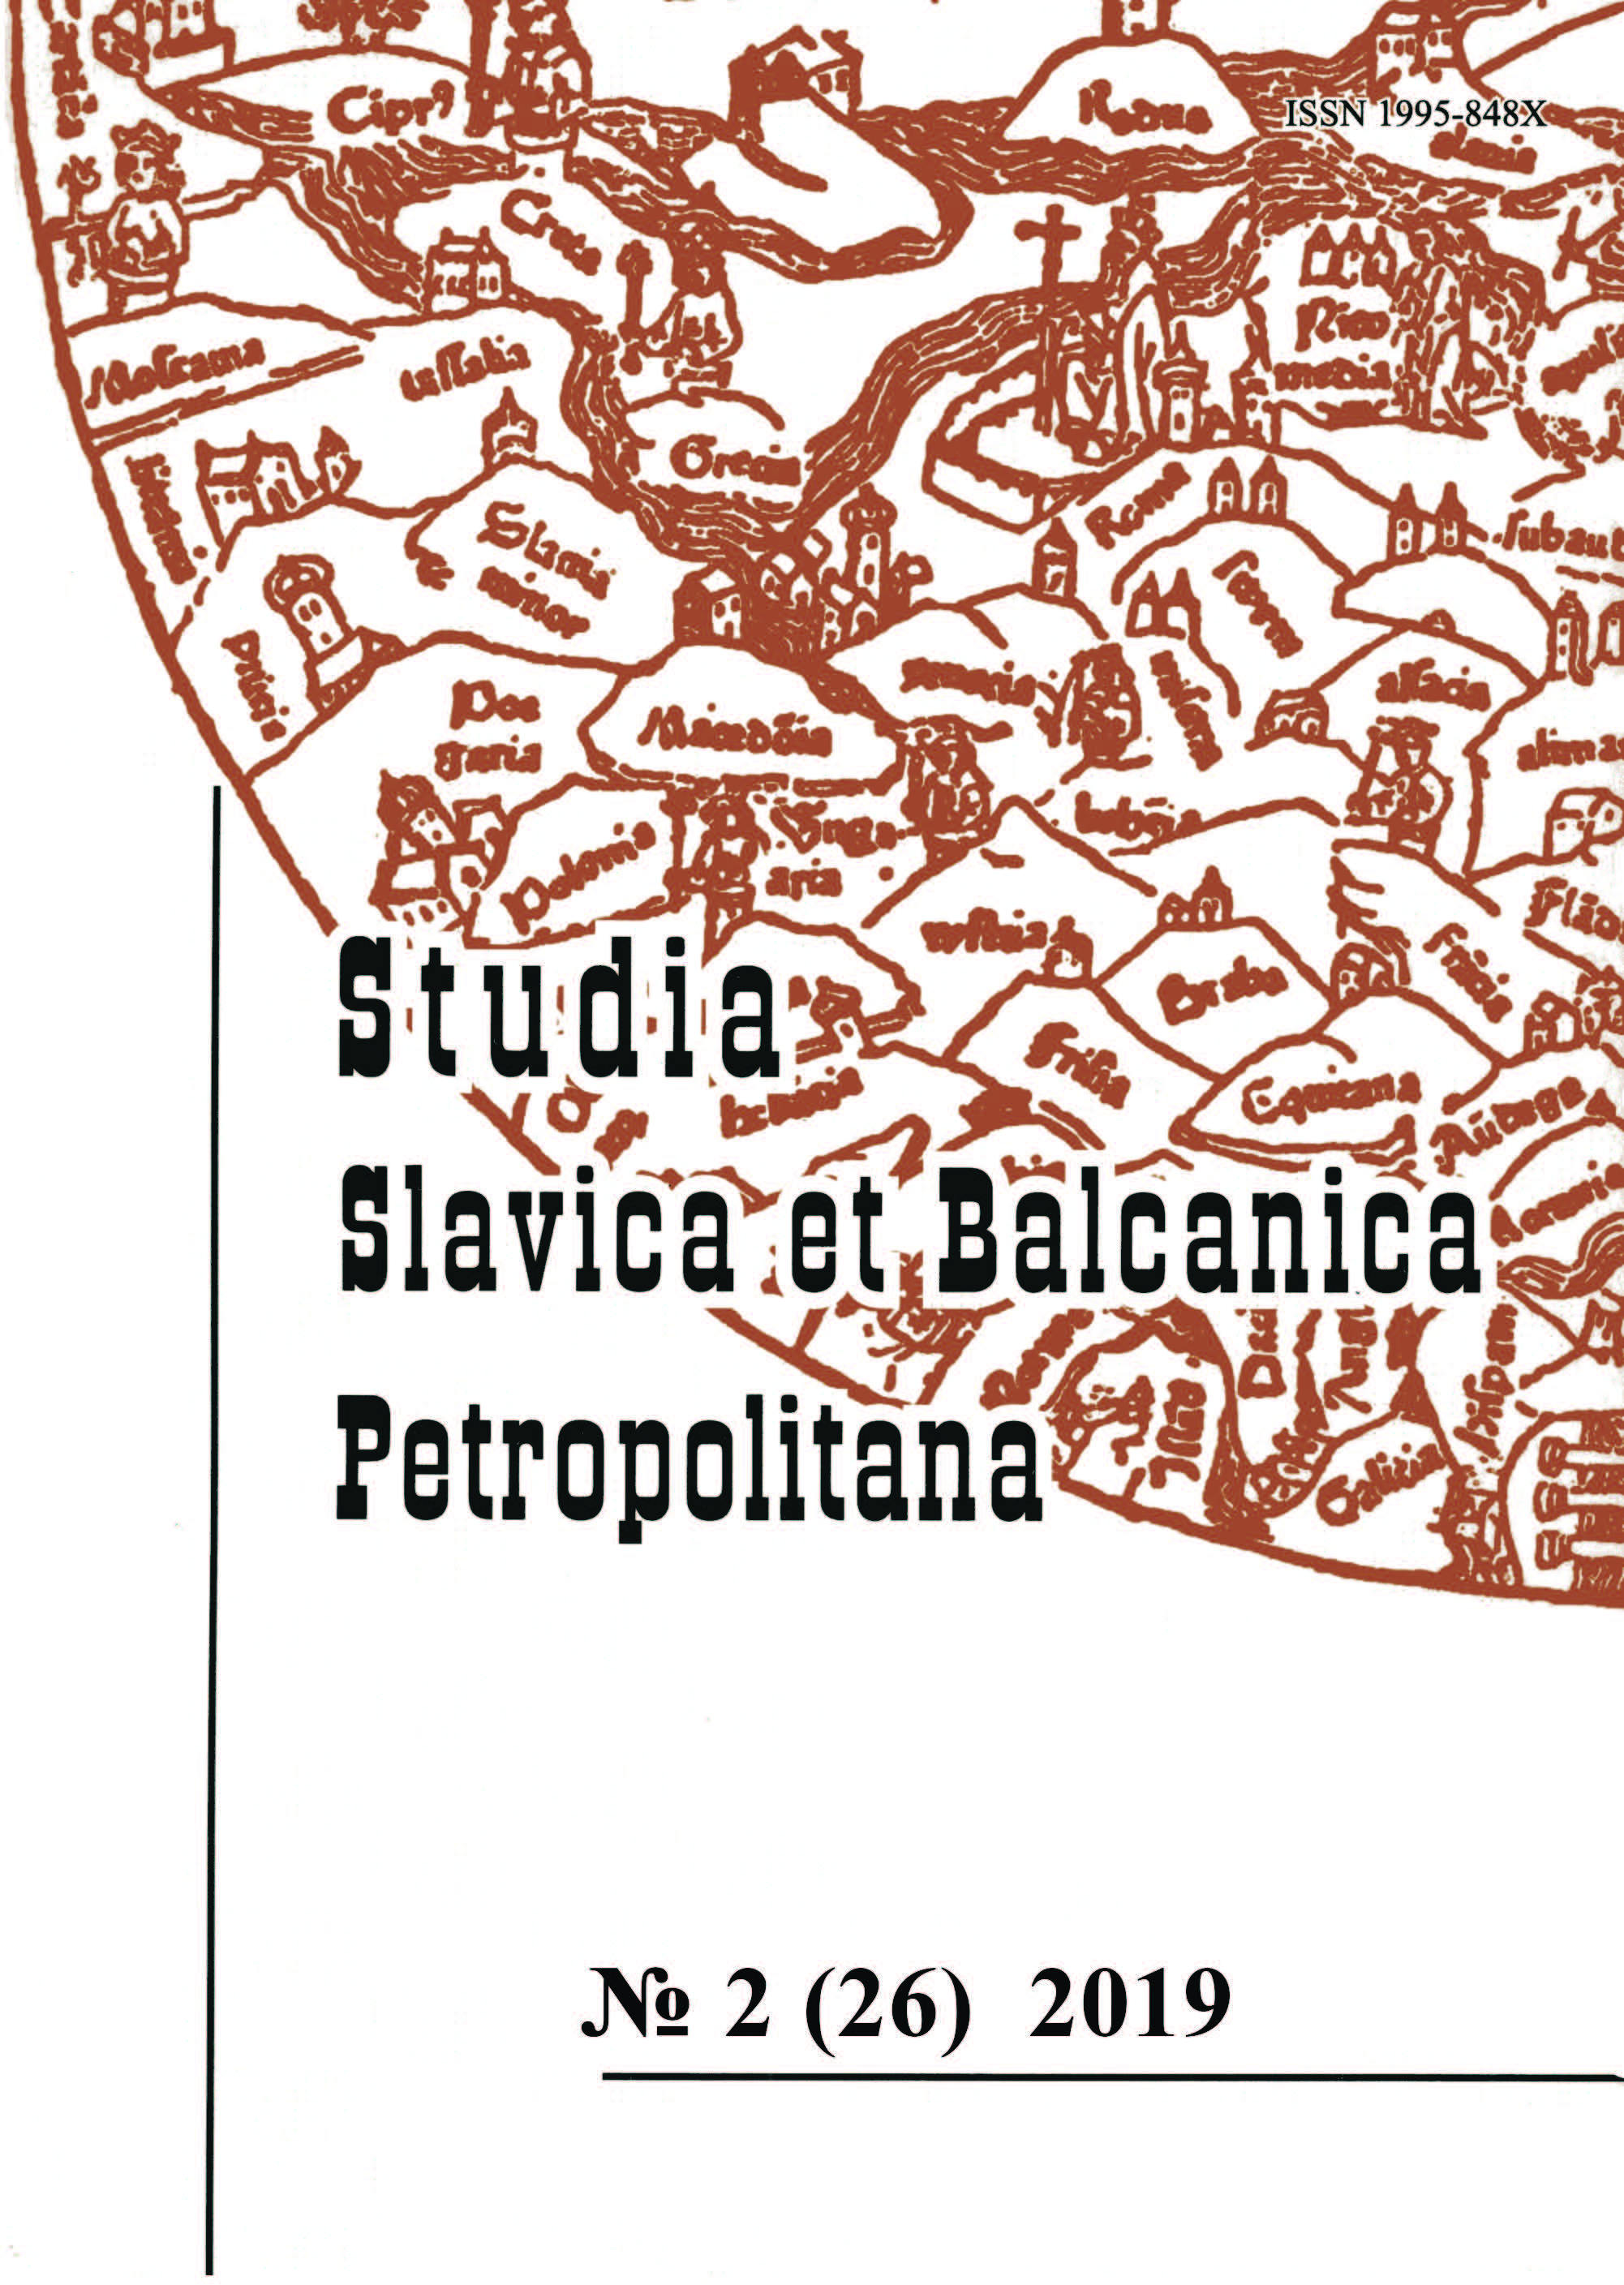 13th Conference on Baltic Studies in Europe, Gdańsk, June 26–29, 2019